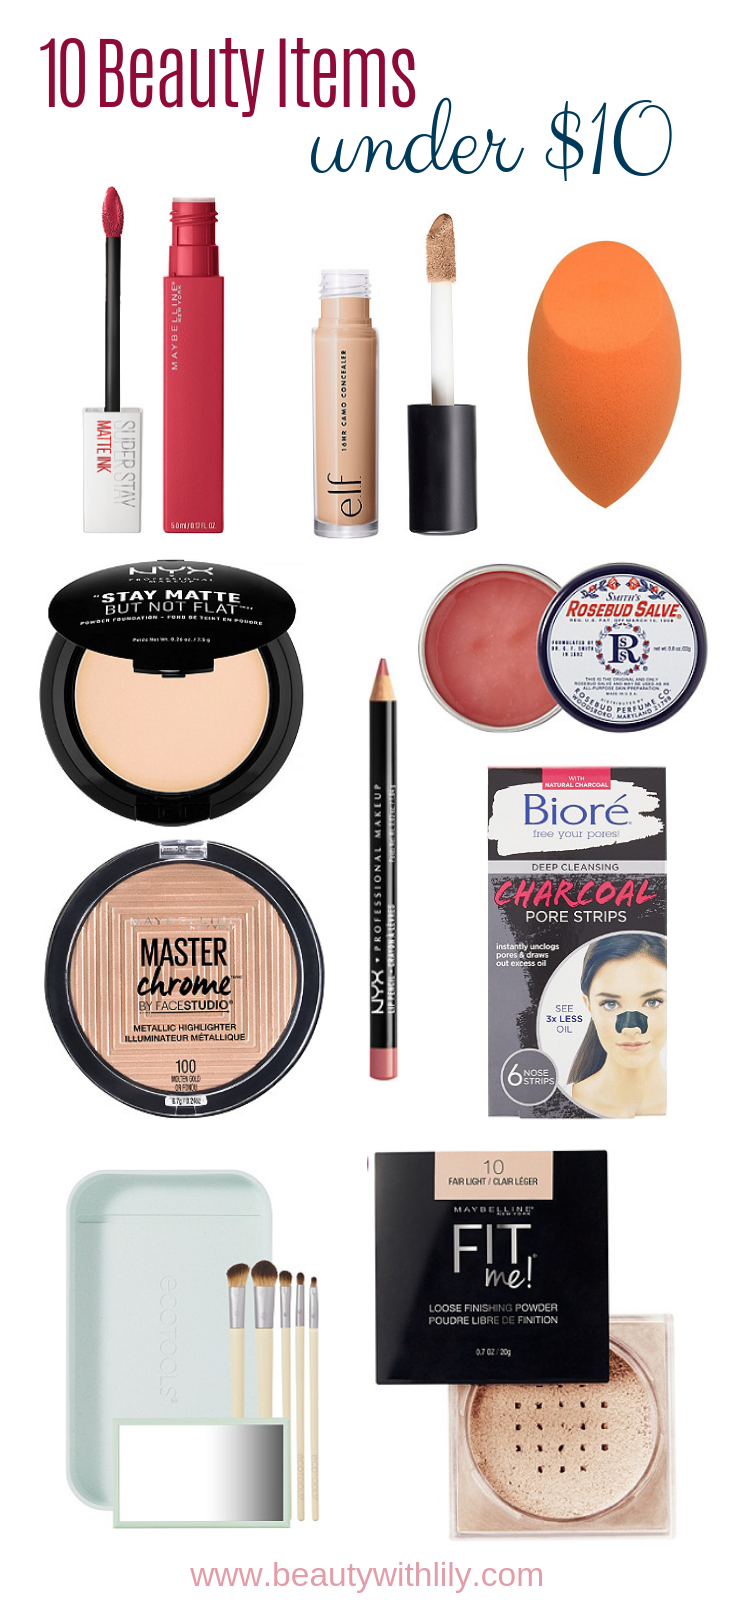 10 Beauty Items Under $10 To Try // Affordable Beauty // Affordable Makeup // Drugstore Makeup   Beauty With Lily